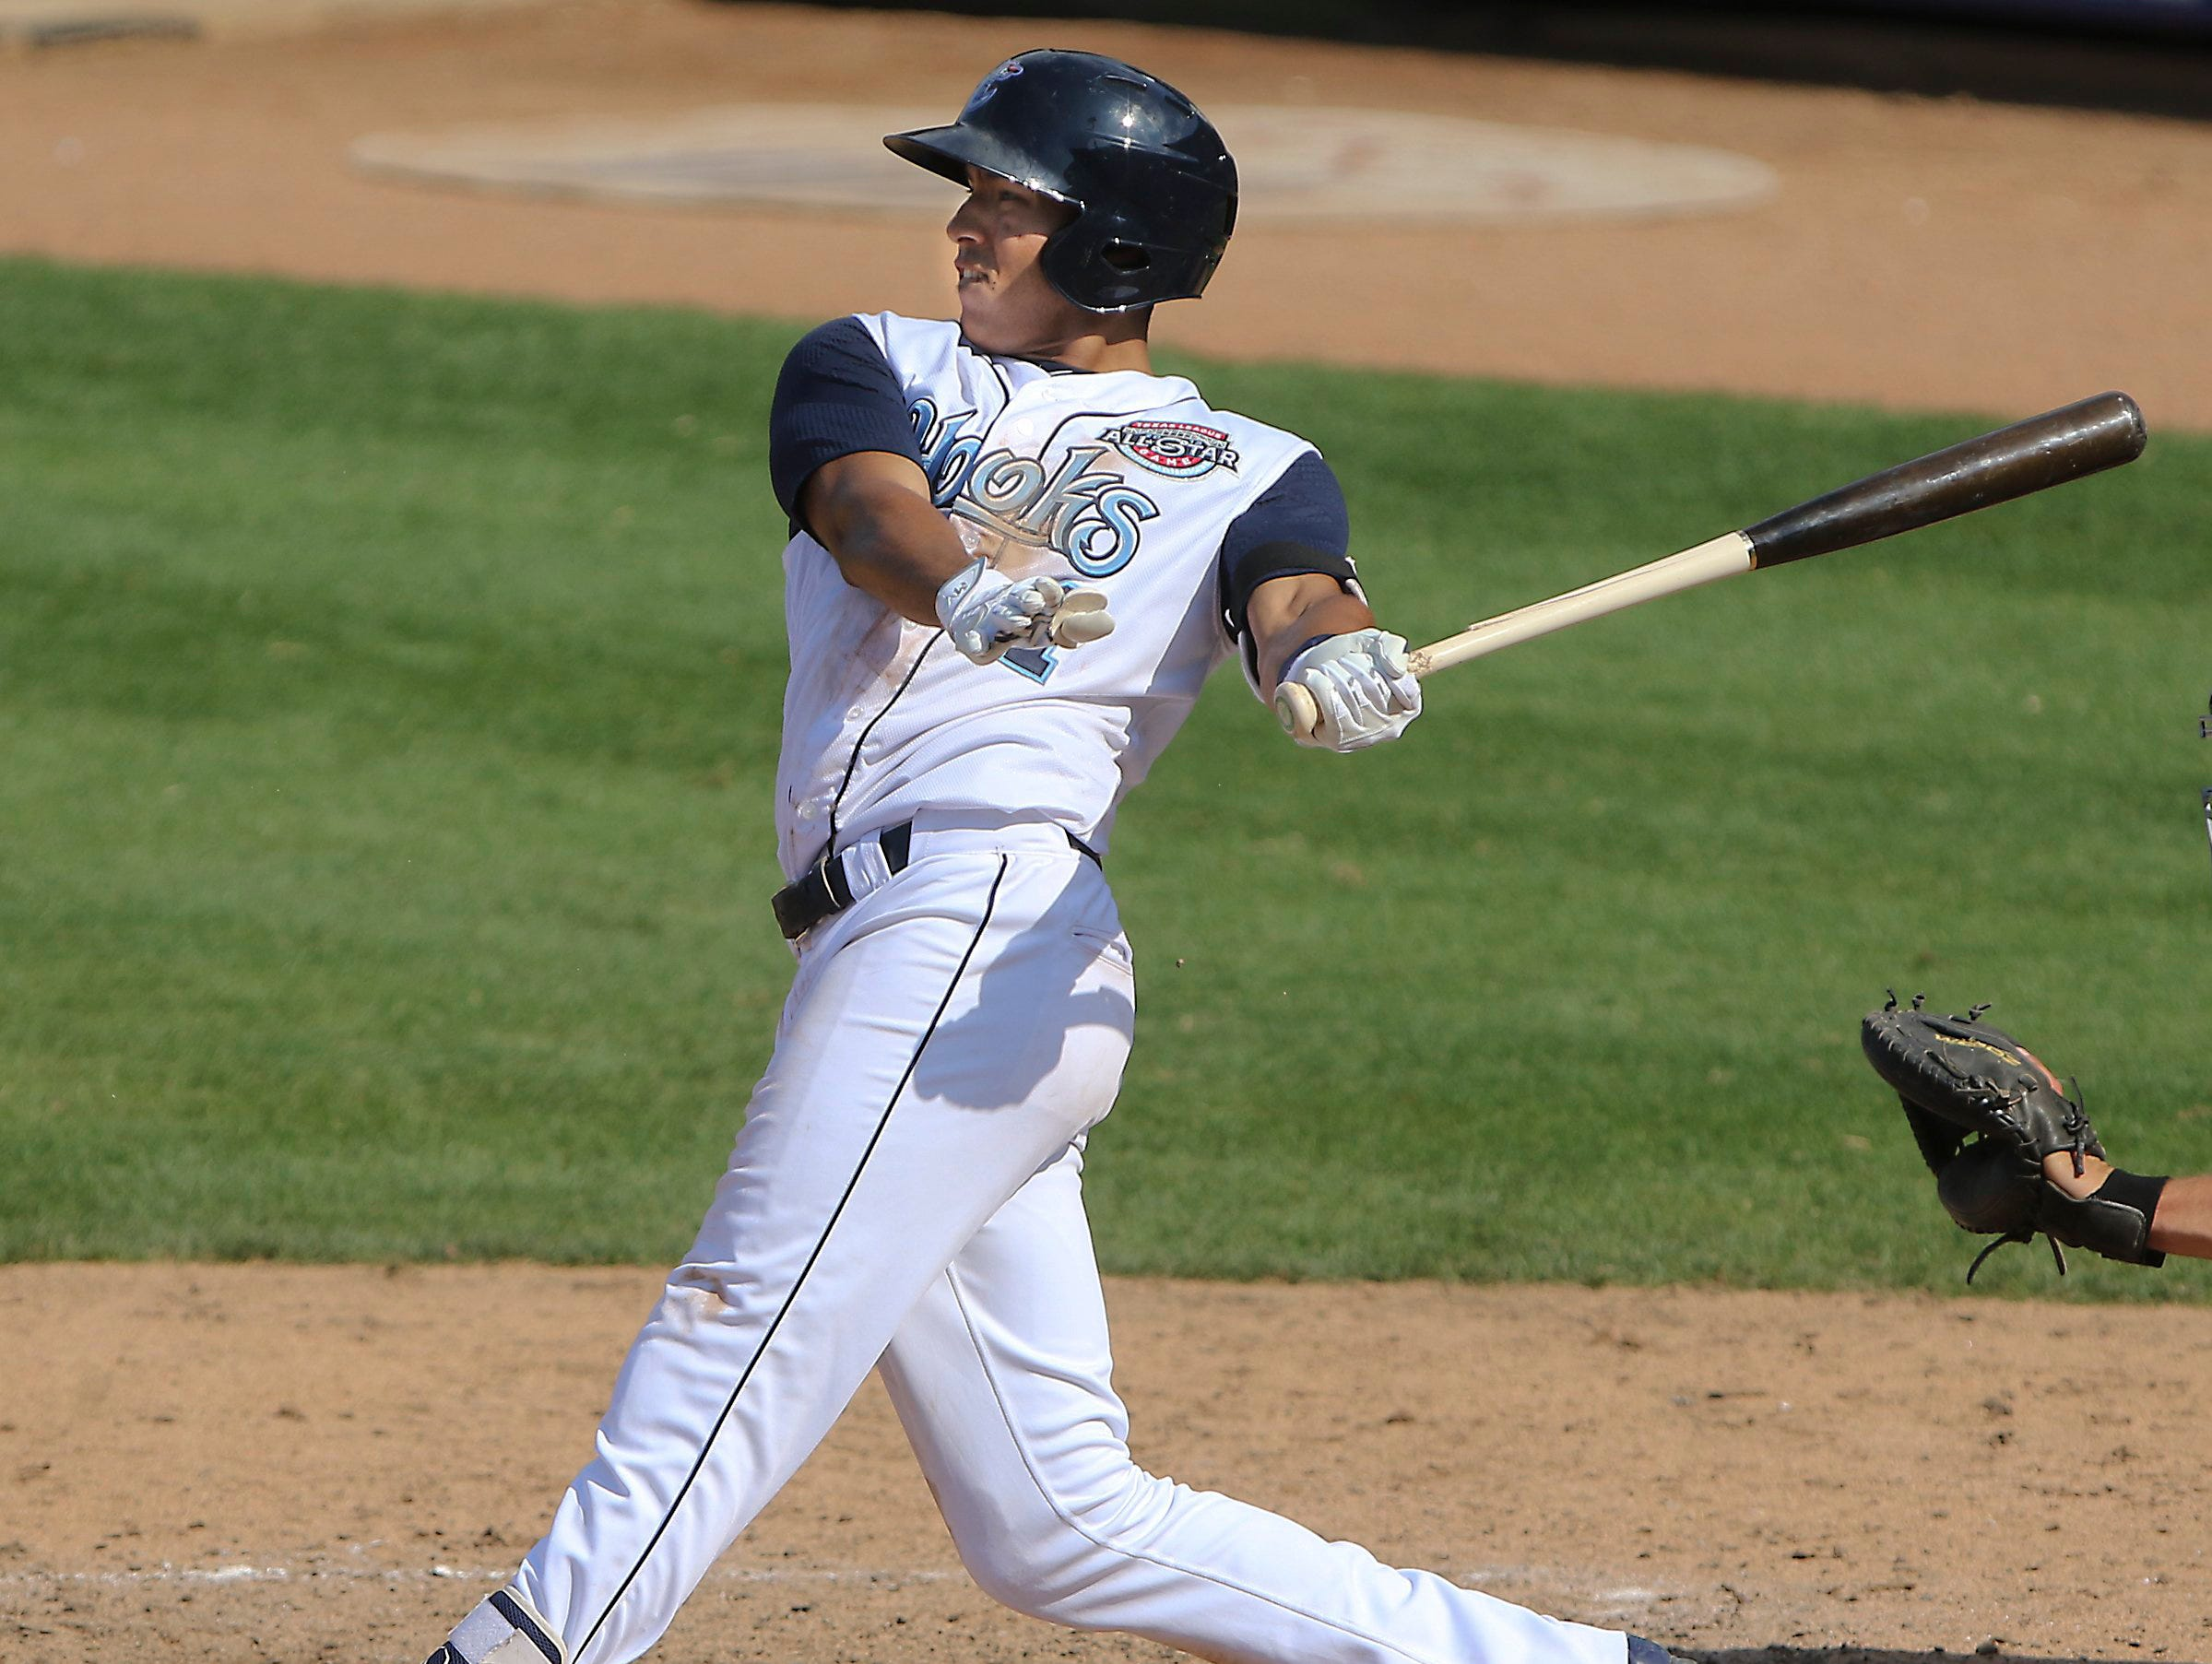 GEORGE TULEY/SPECIAL TO THE CALLER-TIMES Carlos Correa picked up his second single to go with a double for a three hit day for the Hooks at Whataburger Field in Corpus Christi, Sunday, May 3, 2015.